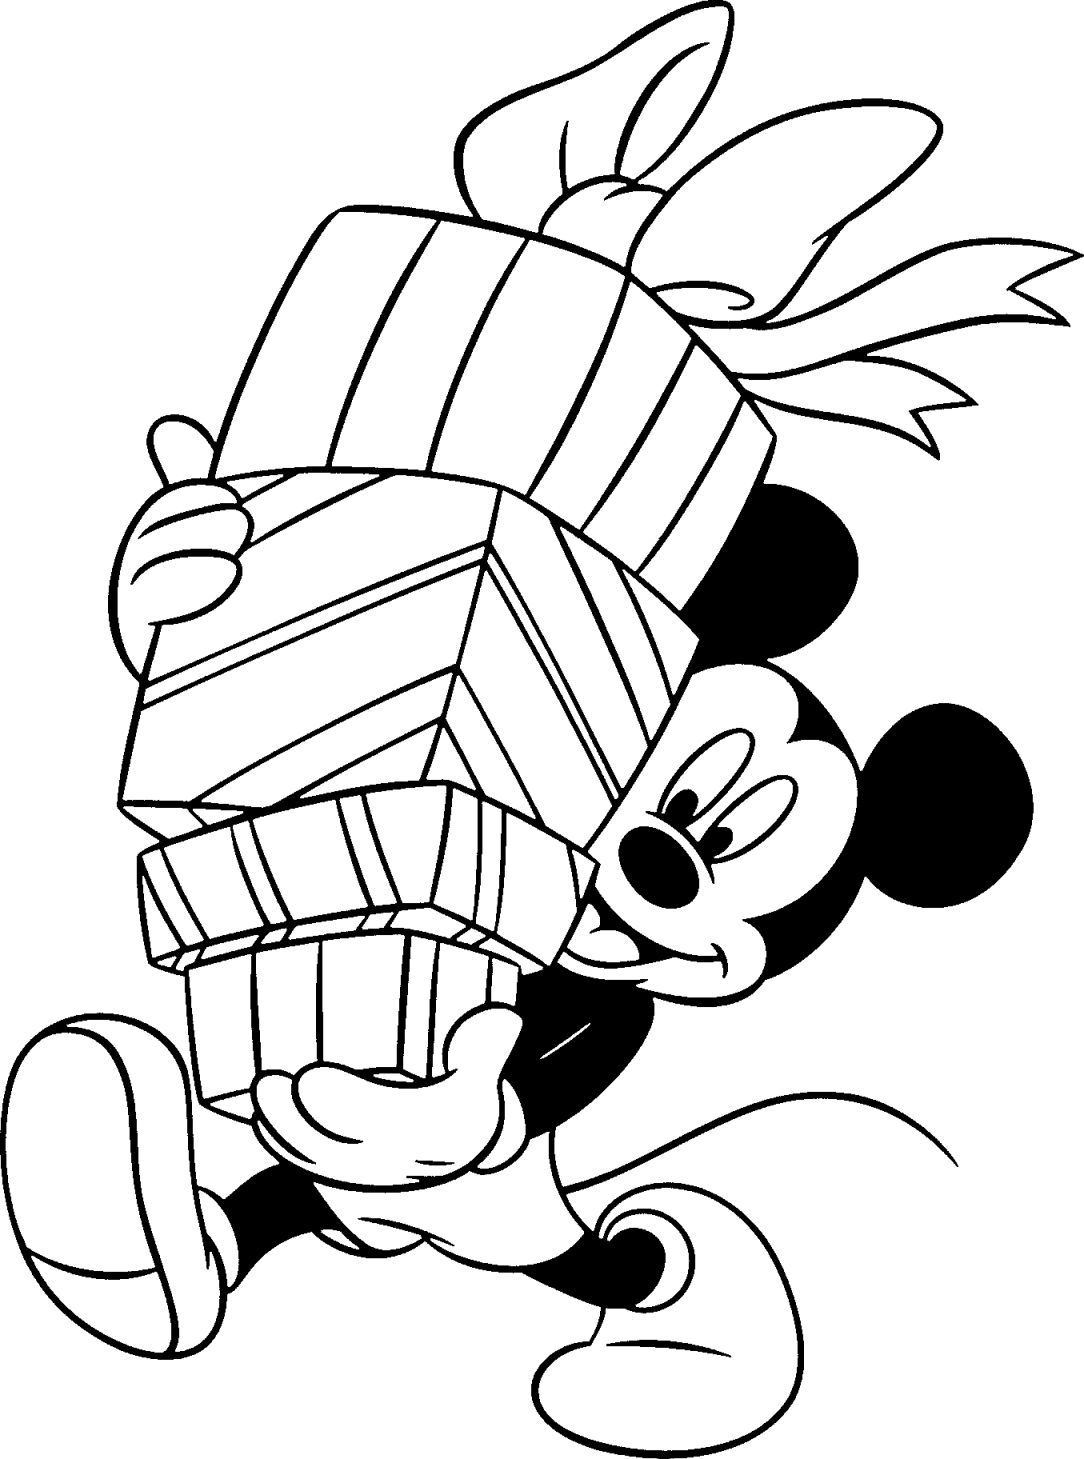 mickey christmas coloring pages knack coloring pages kidsuki mickey coloring christmas pages